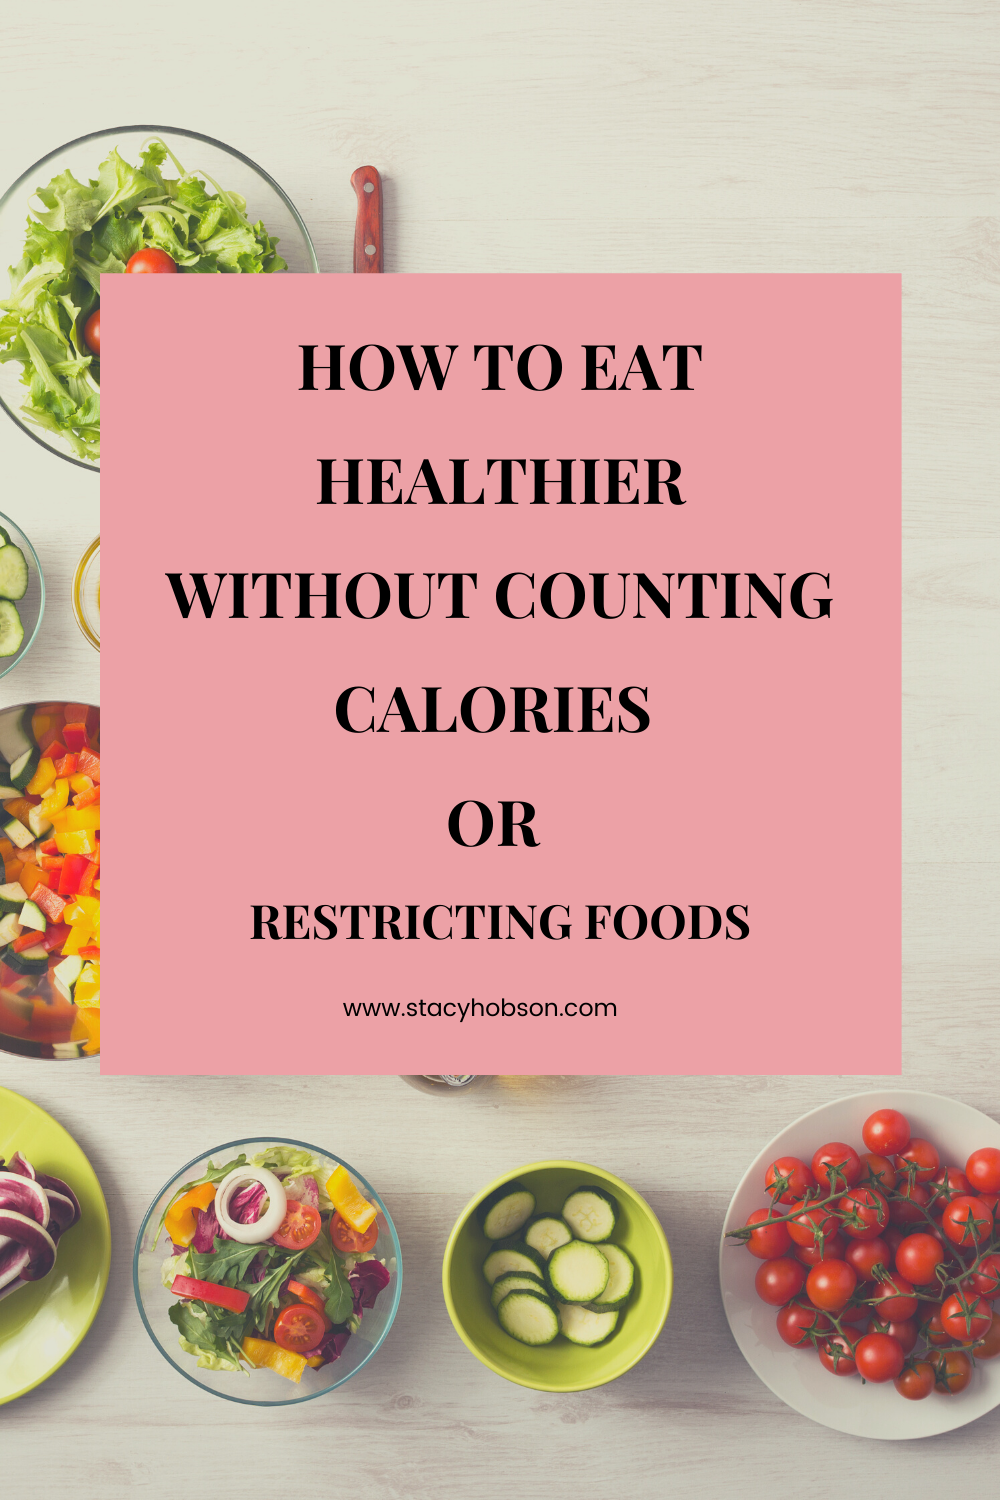 How To Eat Healthier Without Counting Calories Or Restricting Foods In 2020 Healthy Healthy Eating Food